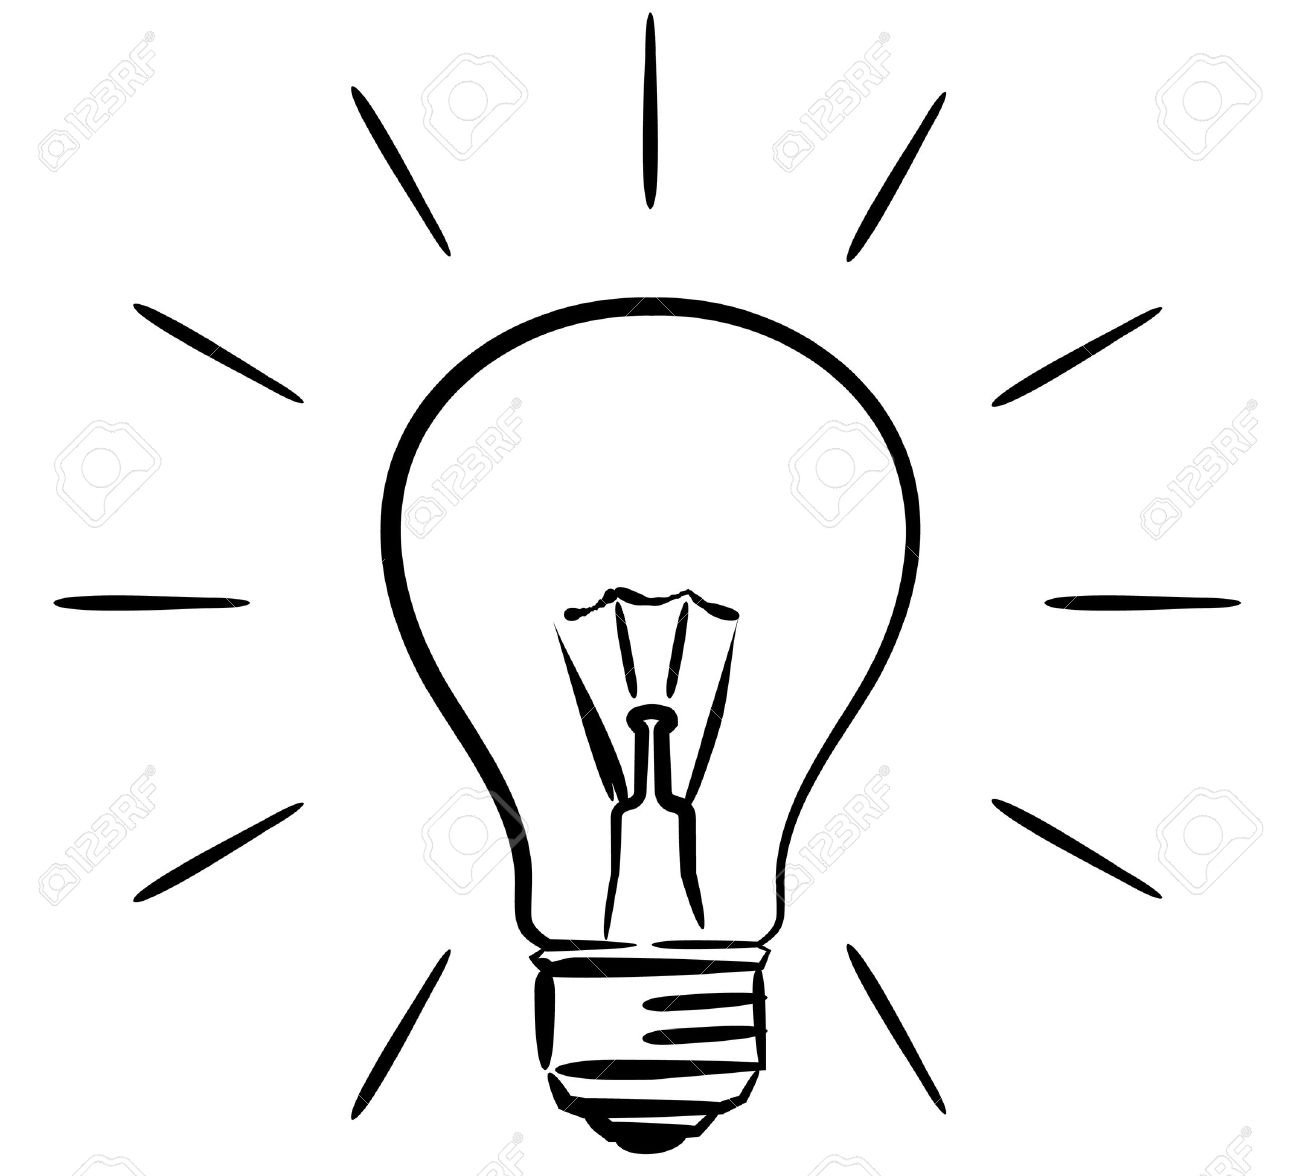 light bulb clipart black and white images on page 0 yanhe clip art intended for lightbulb clipart black and white channelsoc white labeled security operations center risk consulting services light bulb clipart black and white